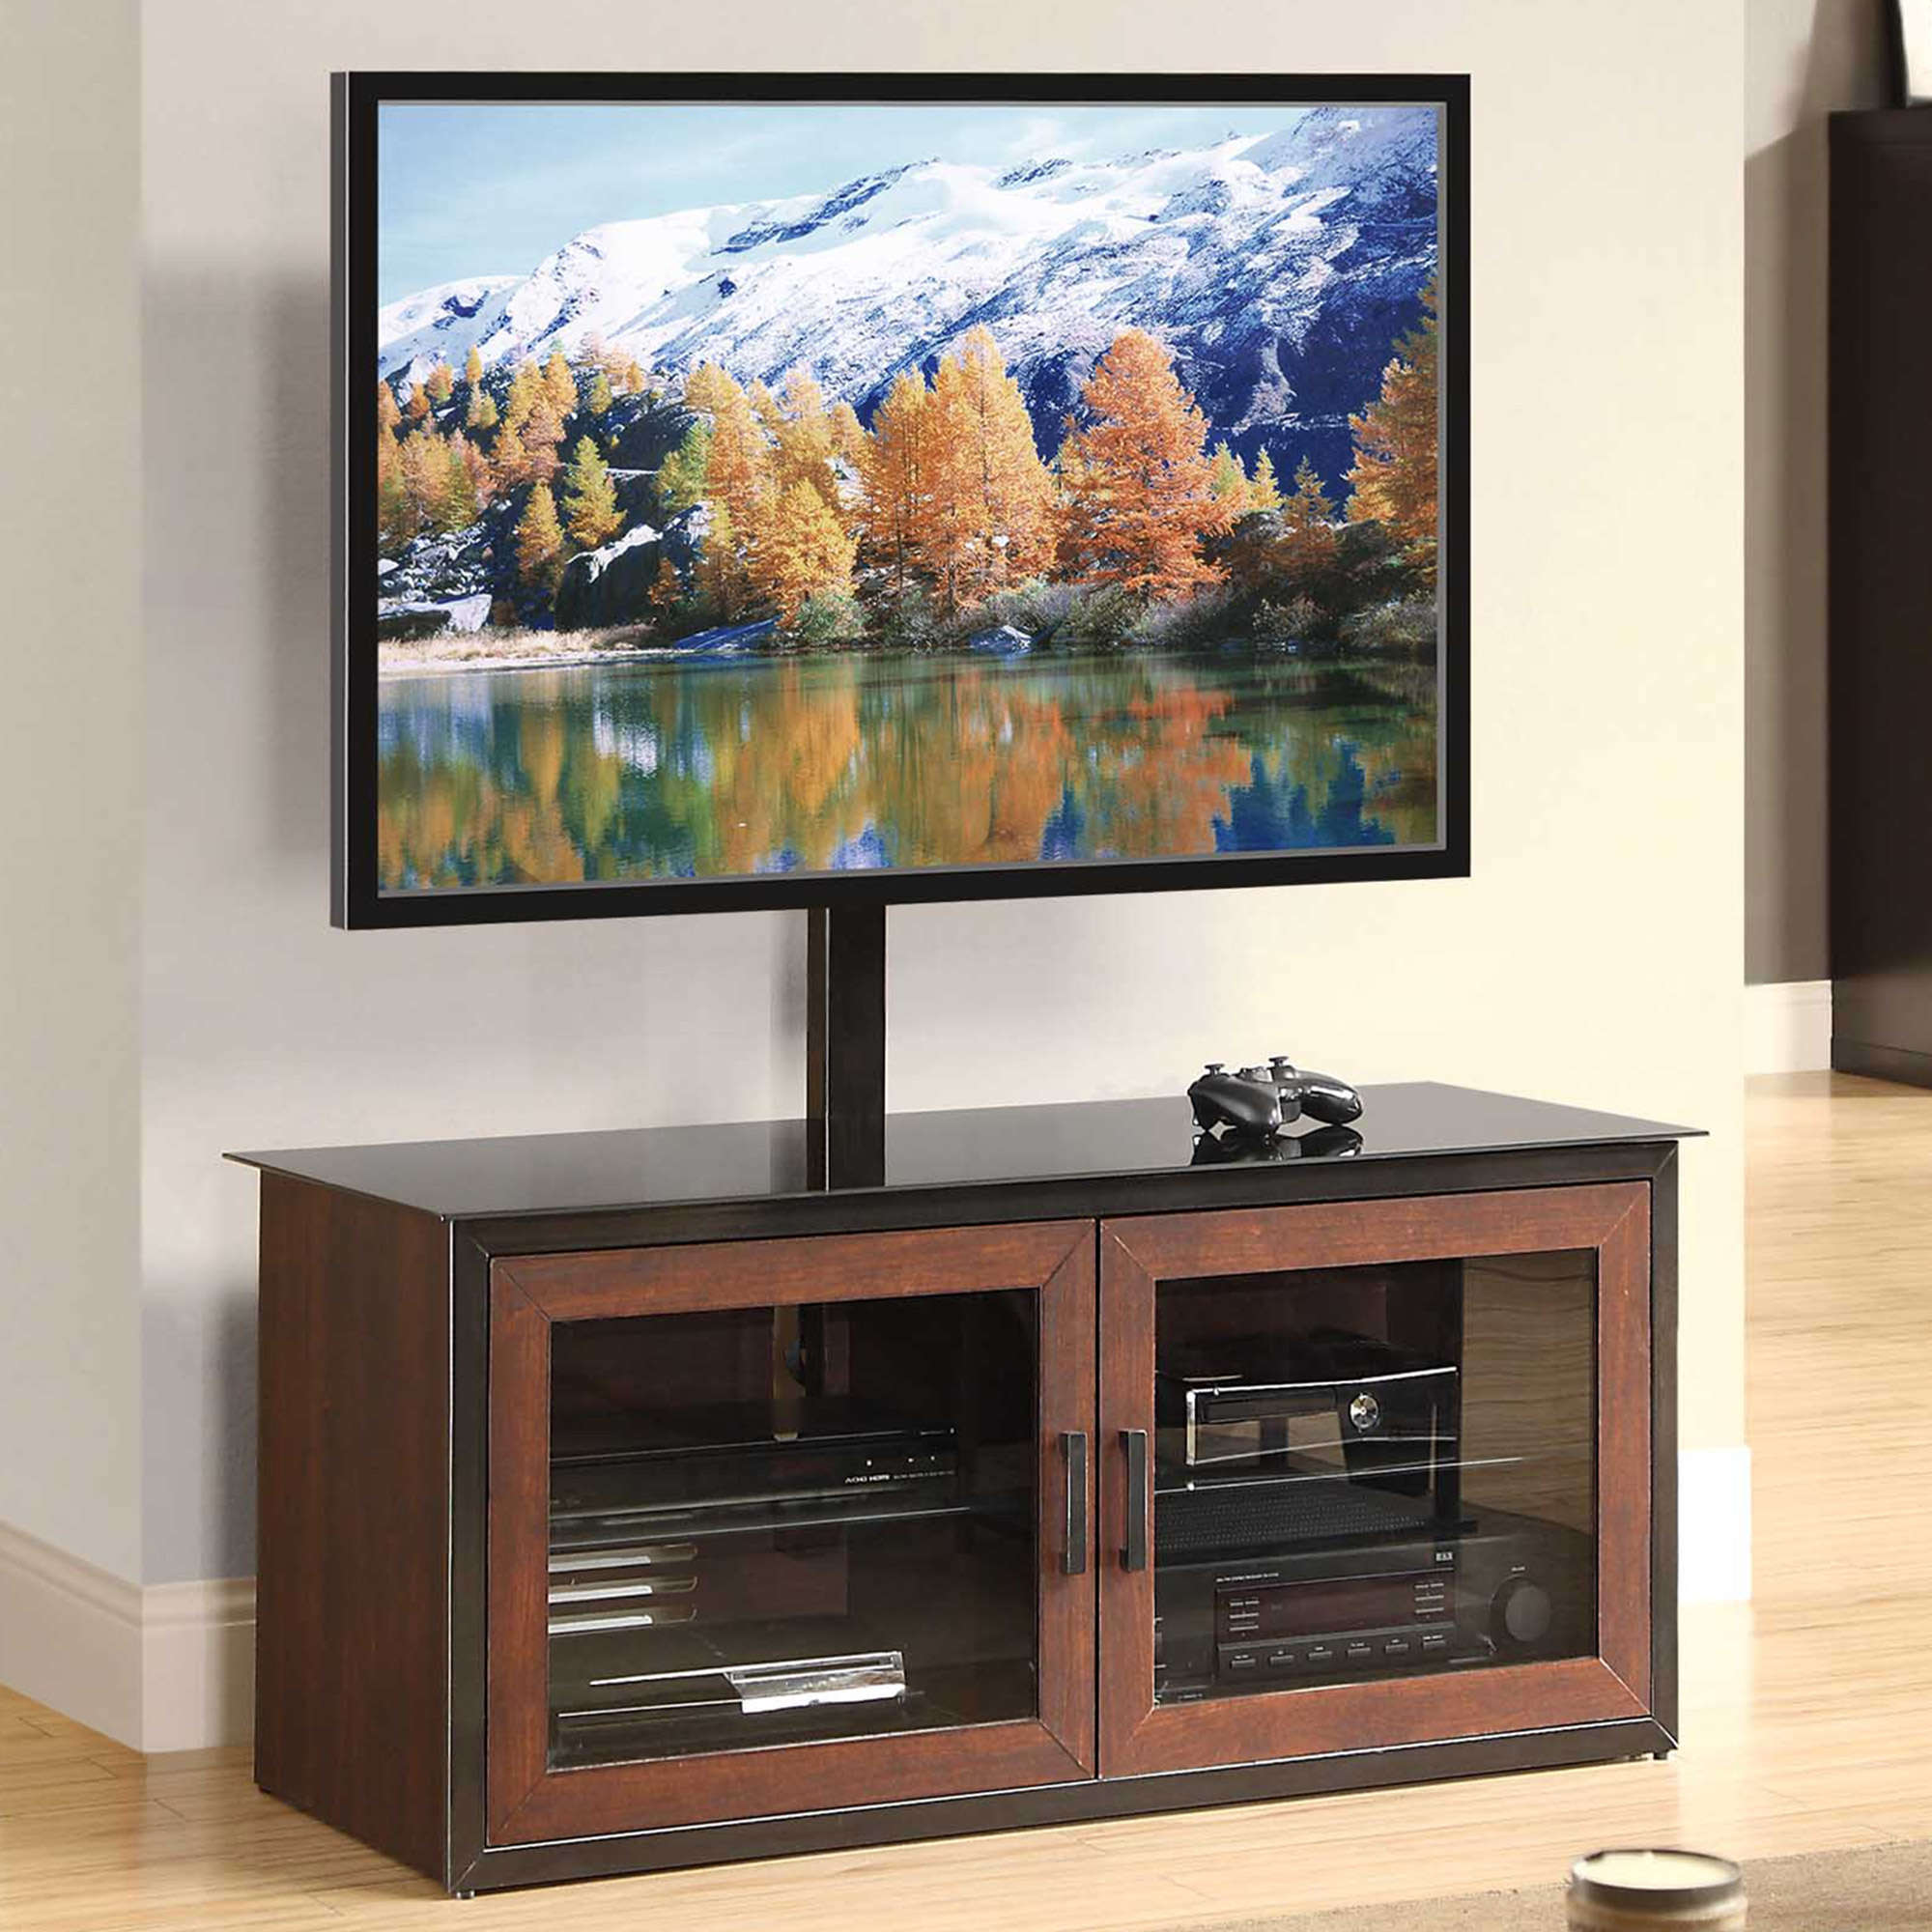 Whalen Brown Closed Door 3 In 1 Tv Stand For Tvs Up To 55